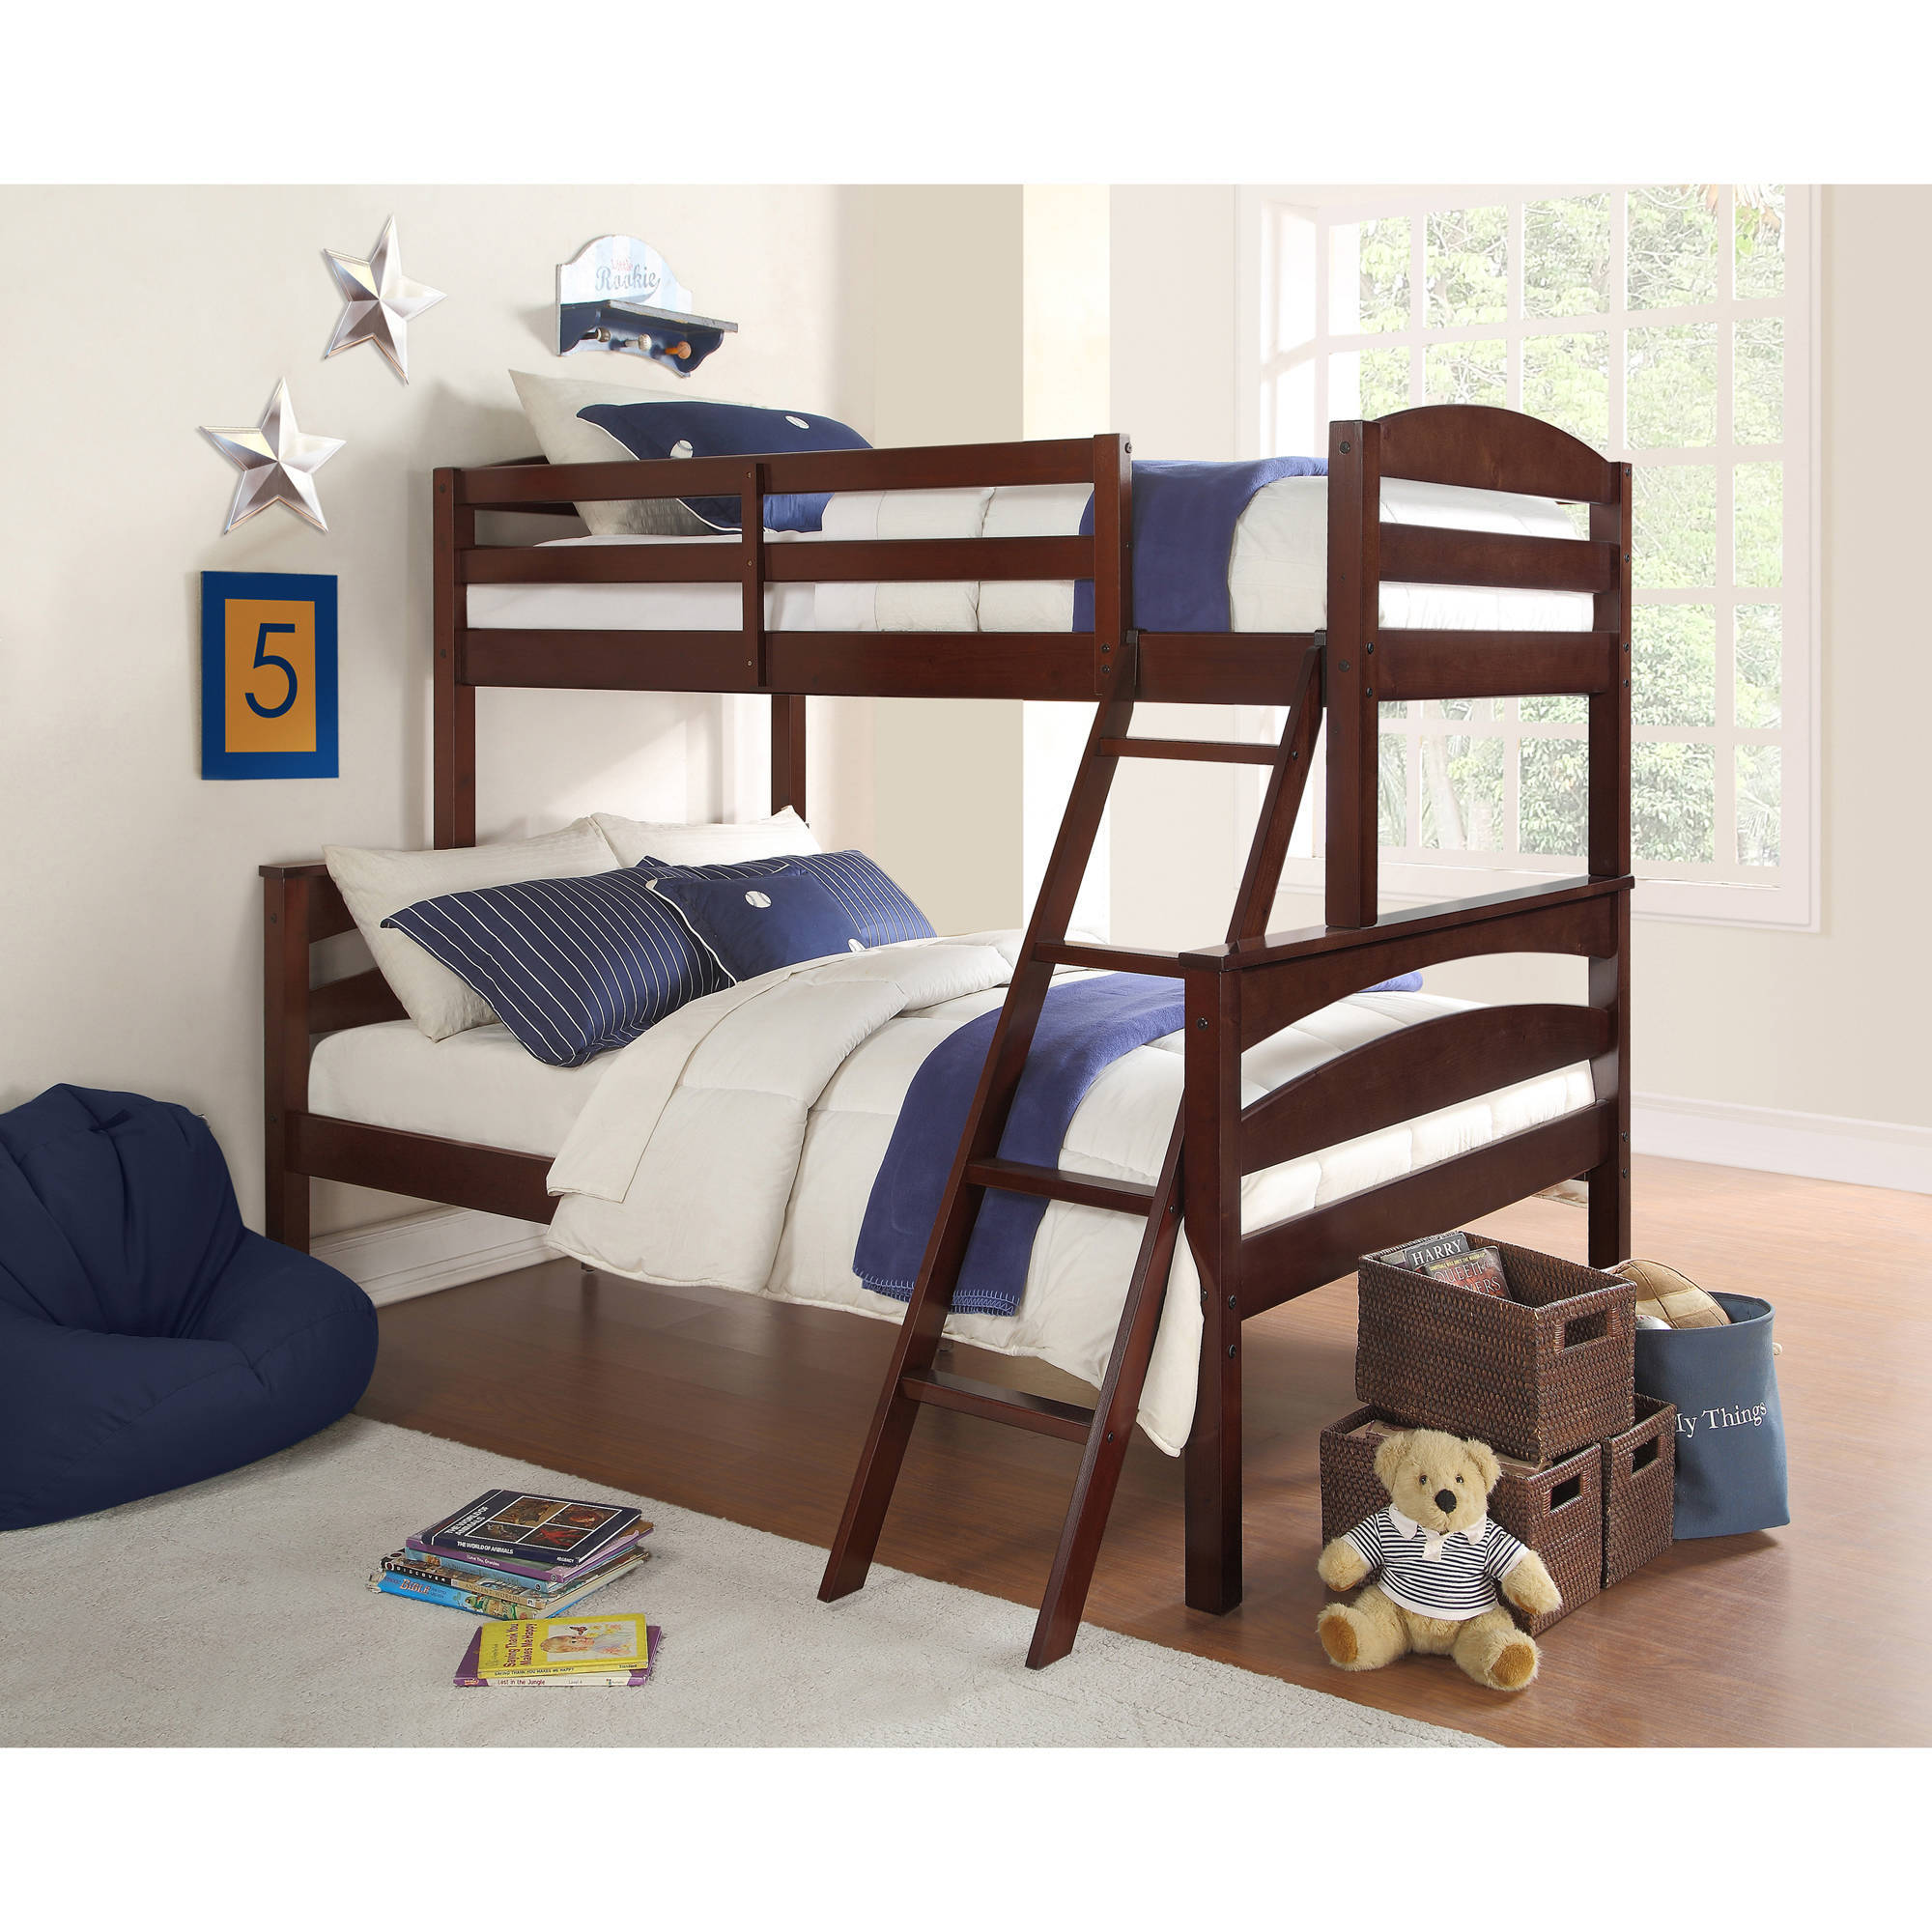 Dorel Living Brady Twin Over Full Wood Bunk Bed, Multiple Colors